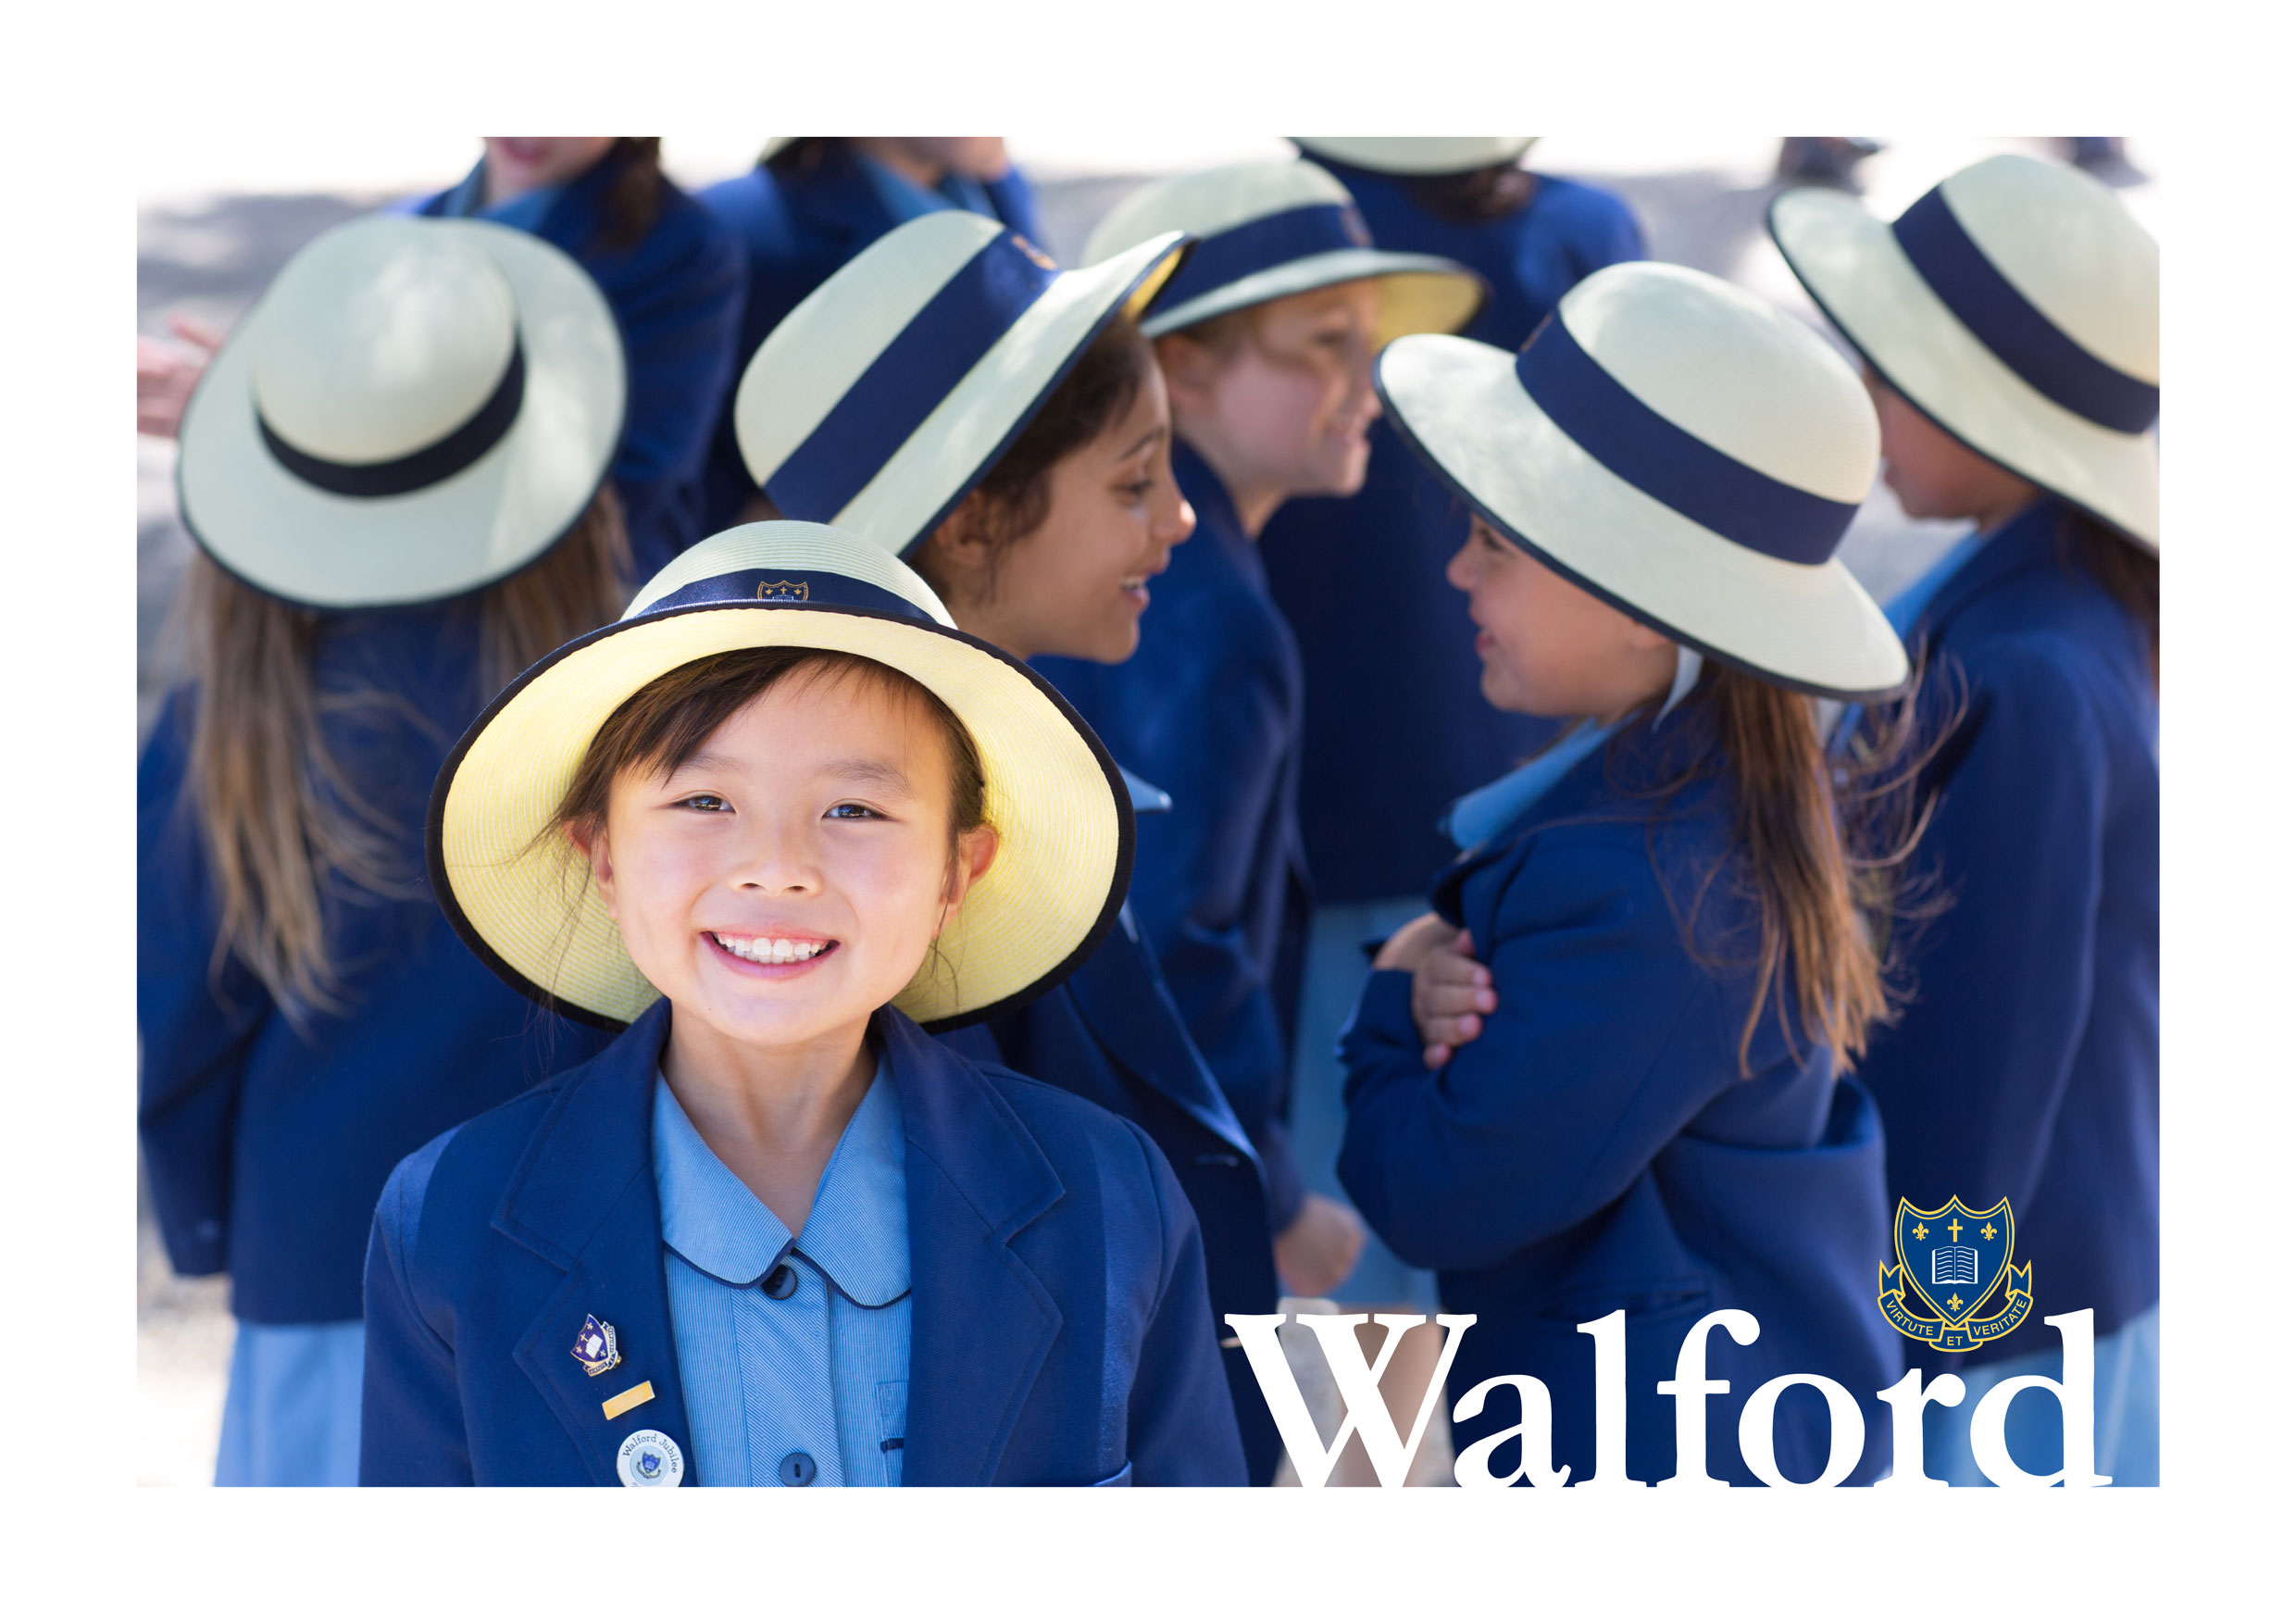 WALFORD-BRANDING-IMAGES_22